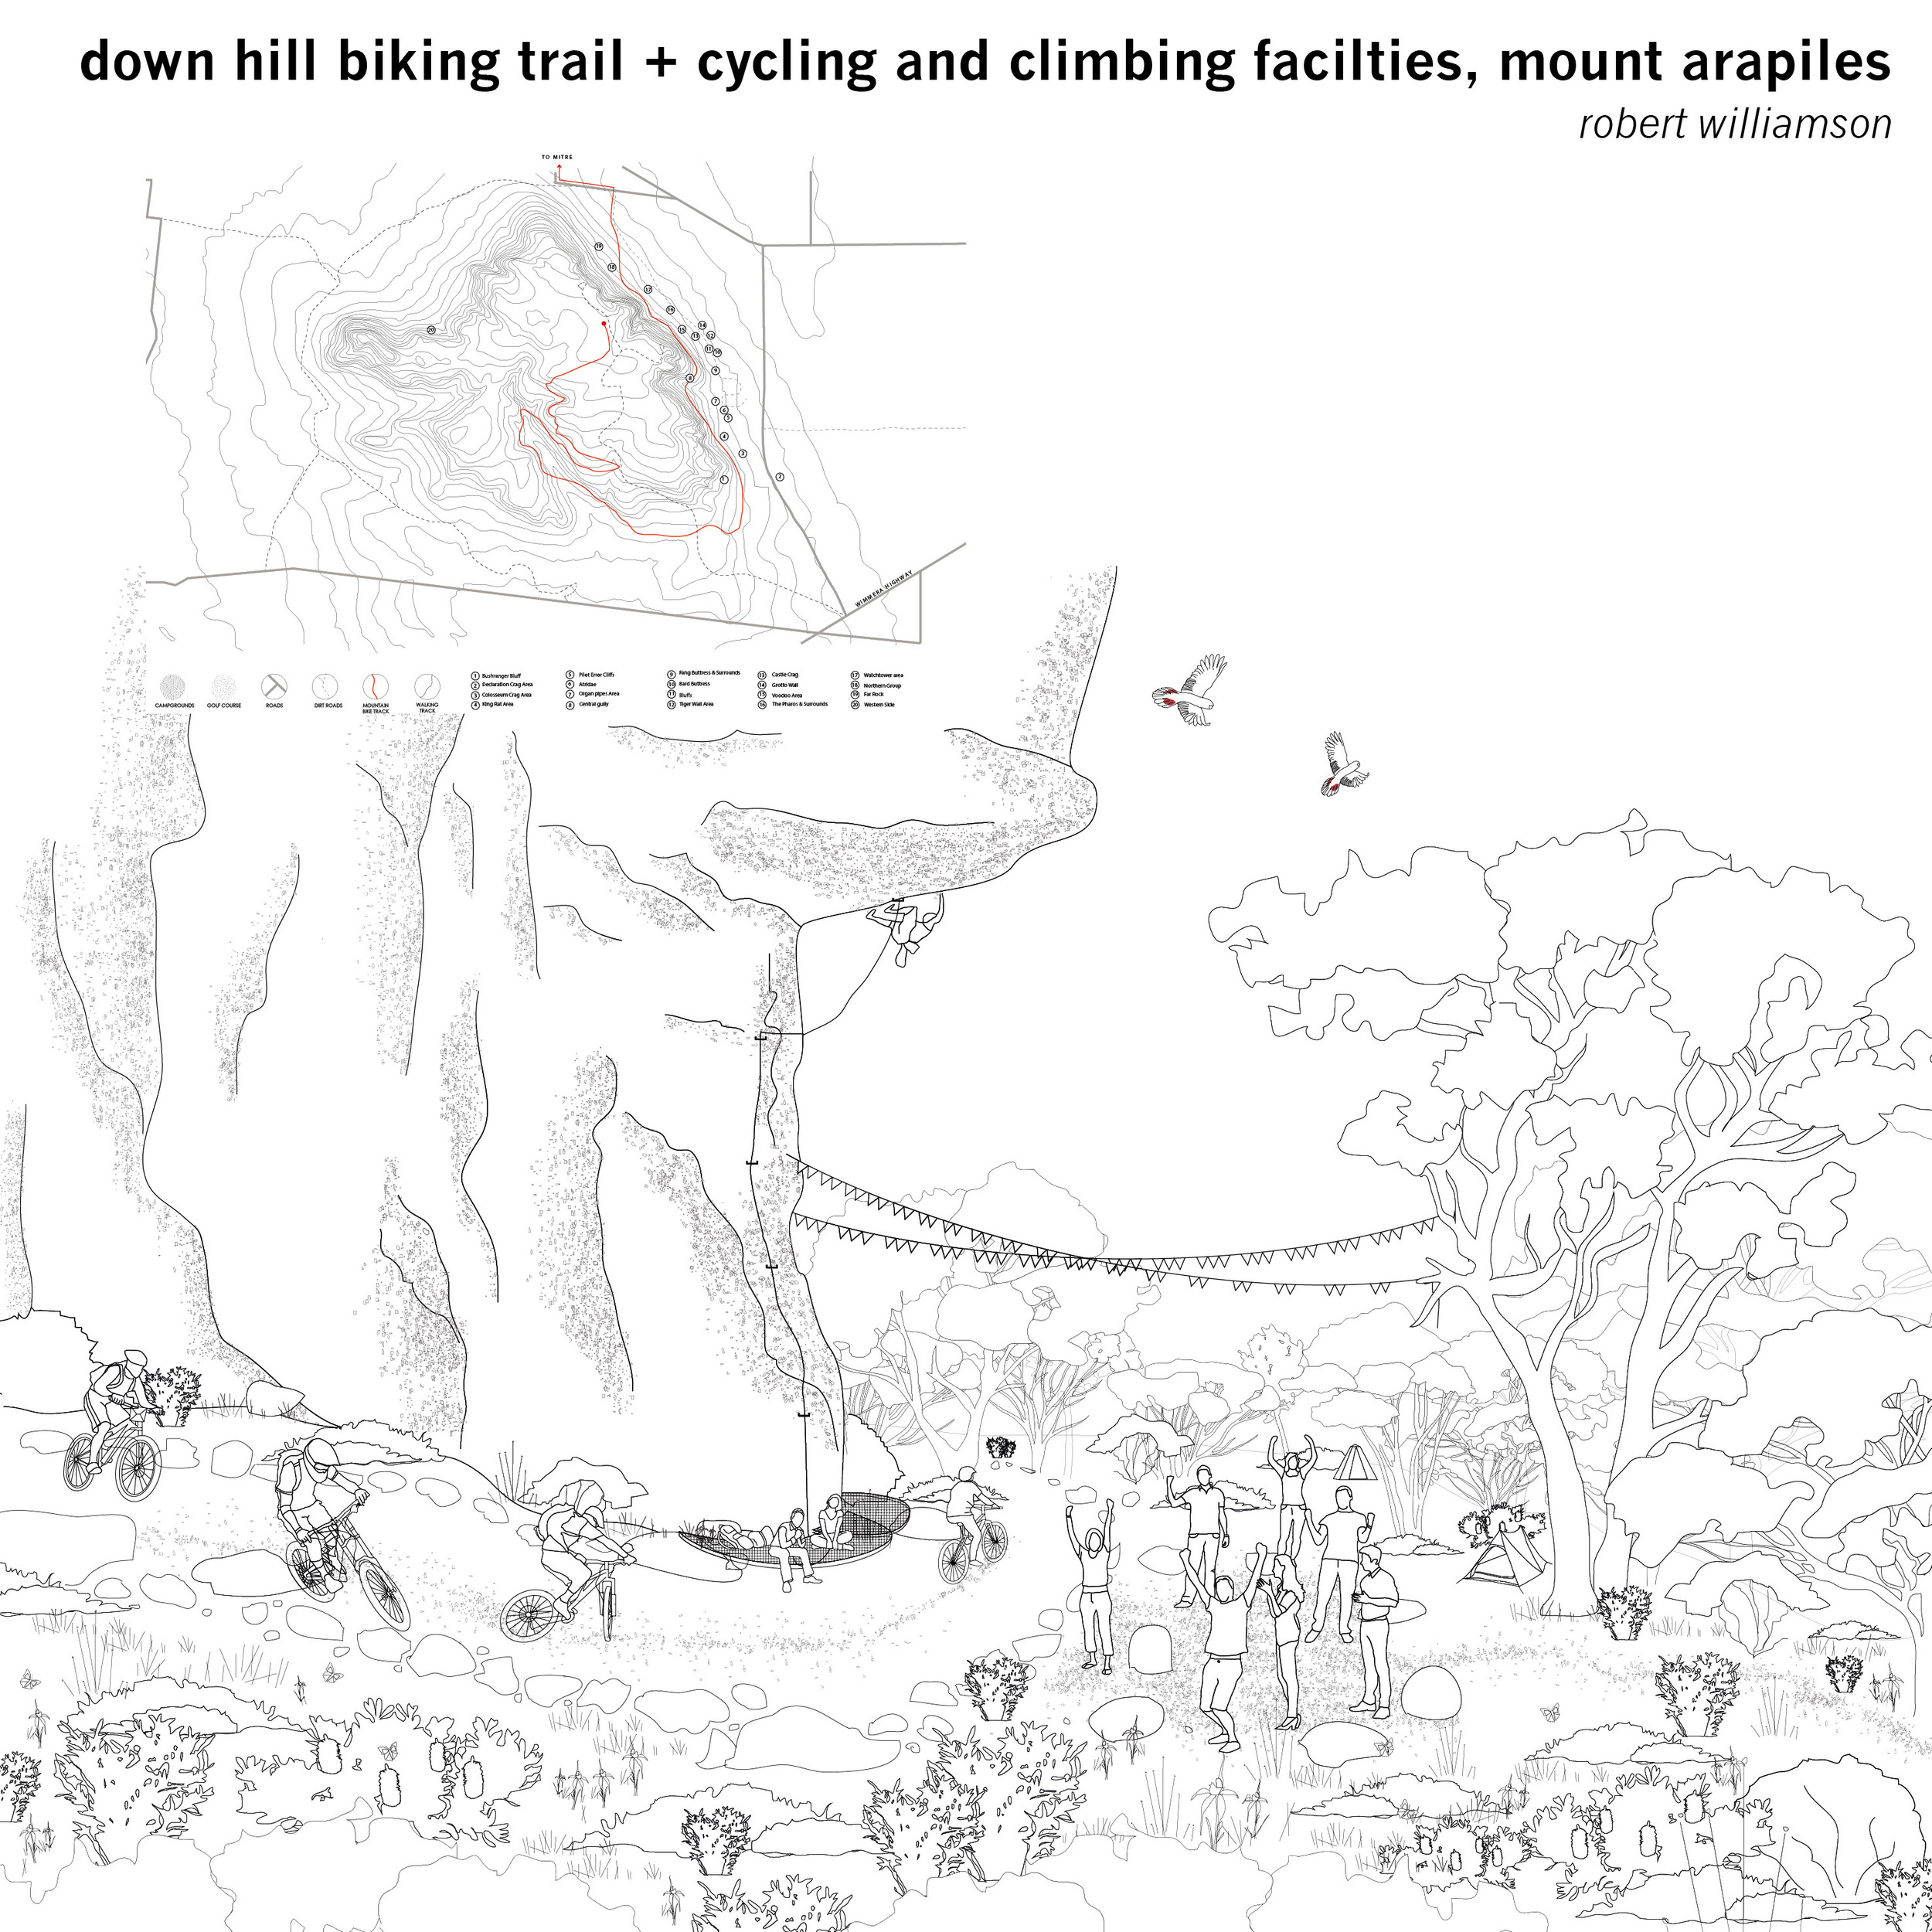 A downhill cycling trail looks to add to the popularity of Mount Arapiles with outdoor activity user groups, defining a new trail which also organises the existing climbing access pathways to help regenerate the compromised environment at the base of the mountain.